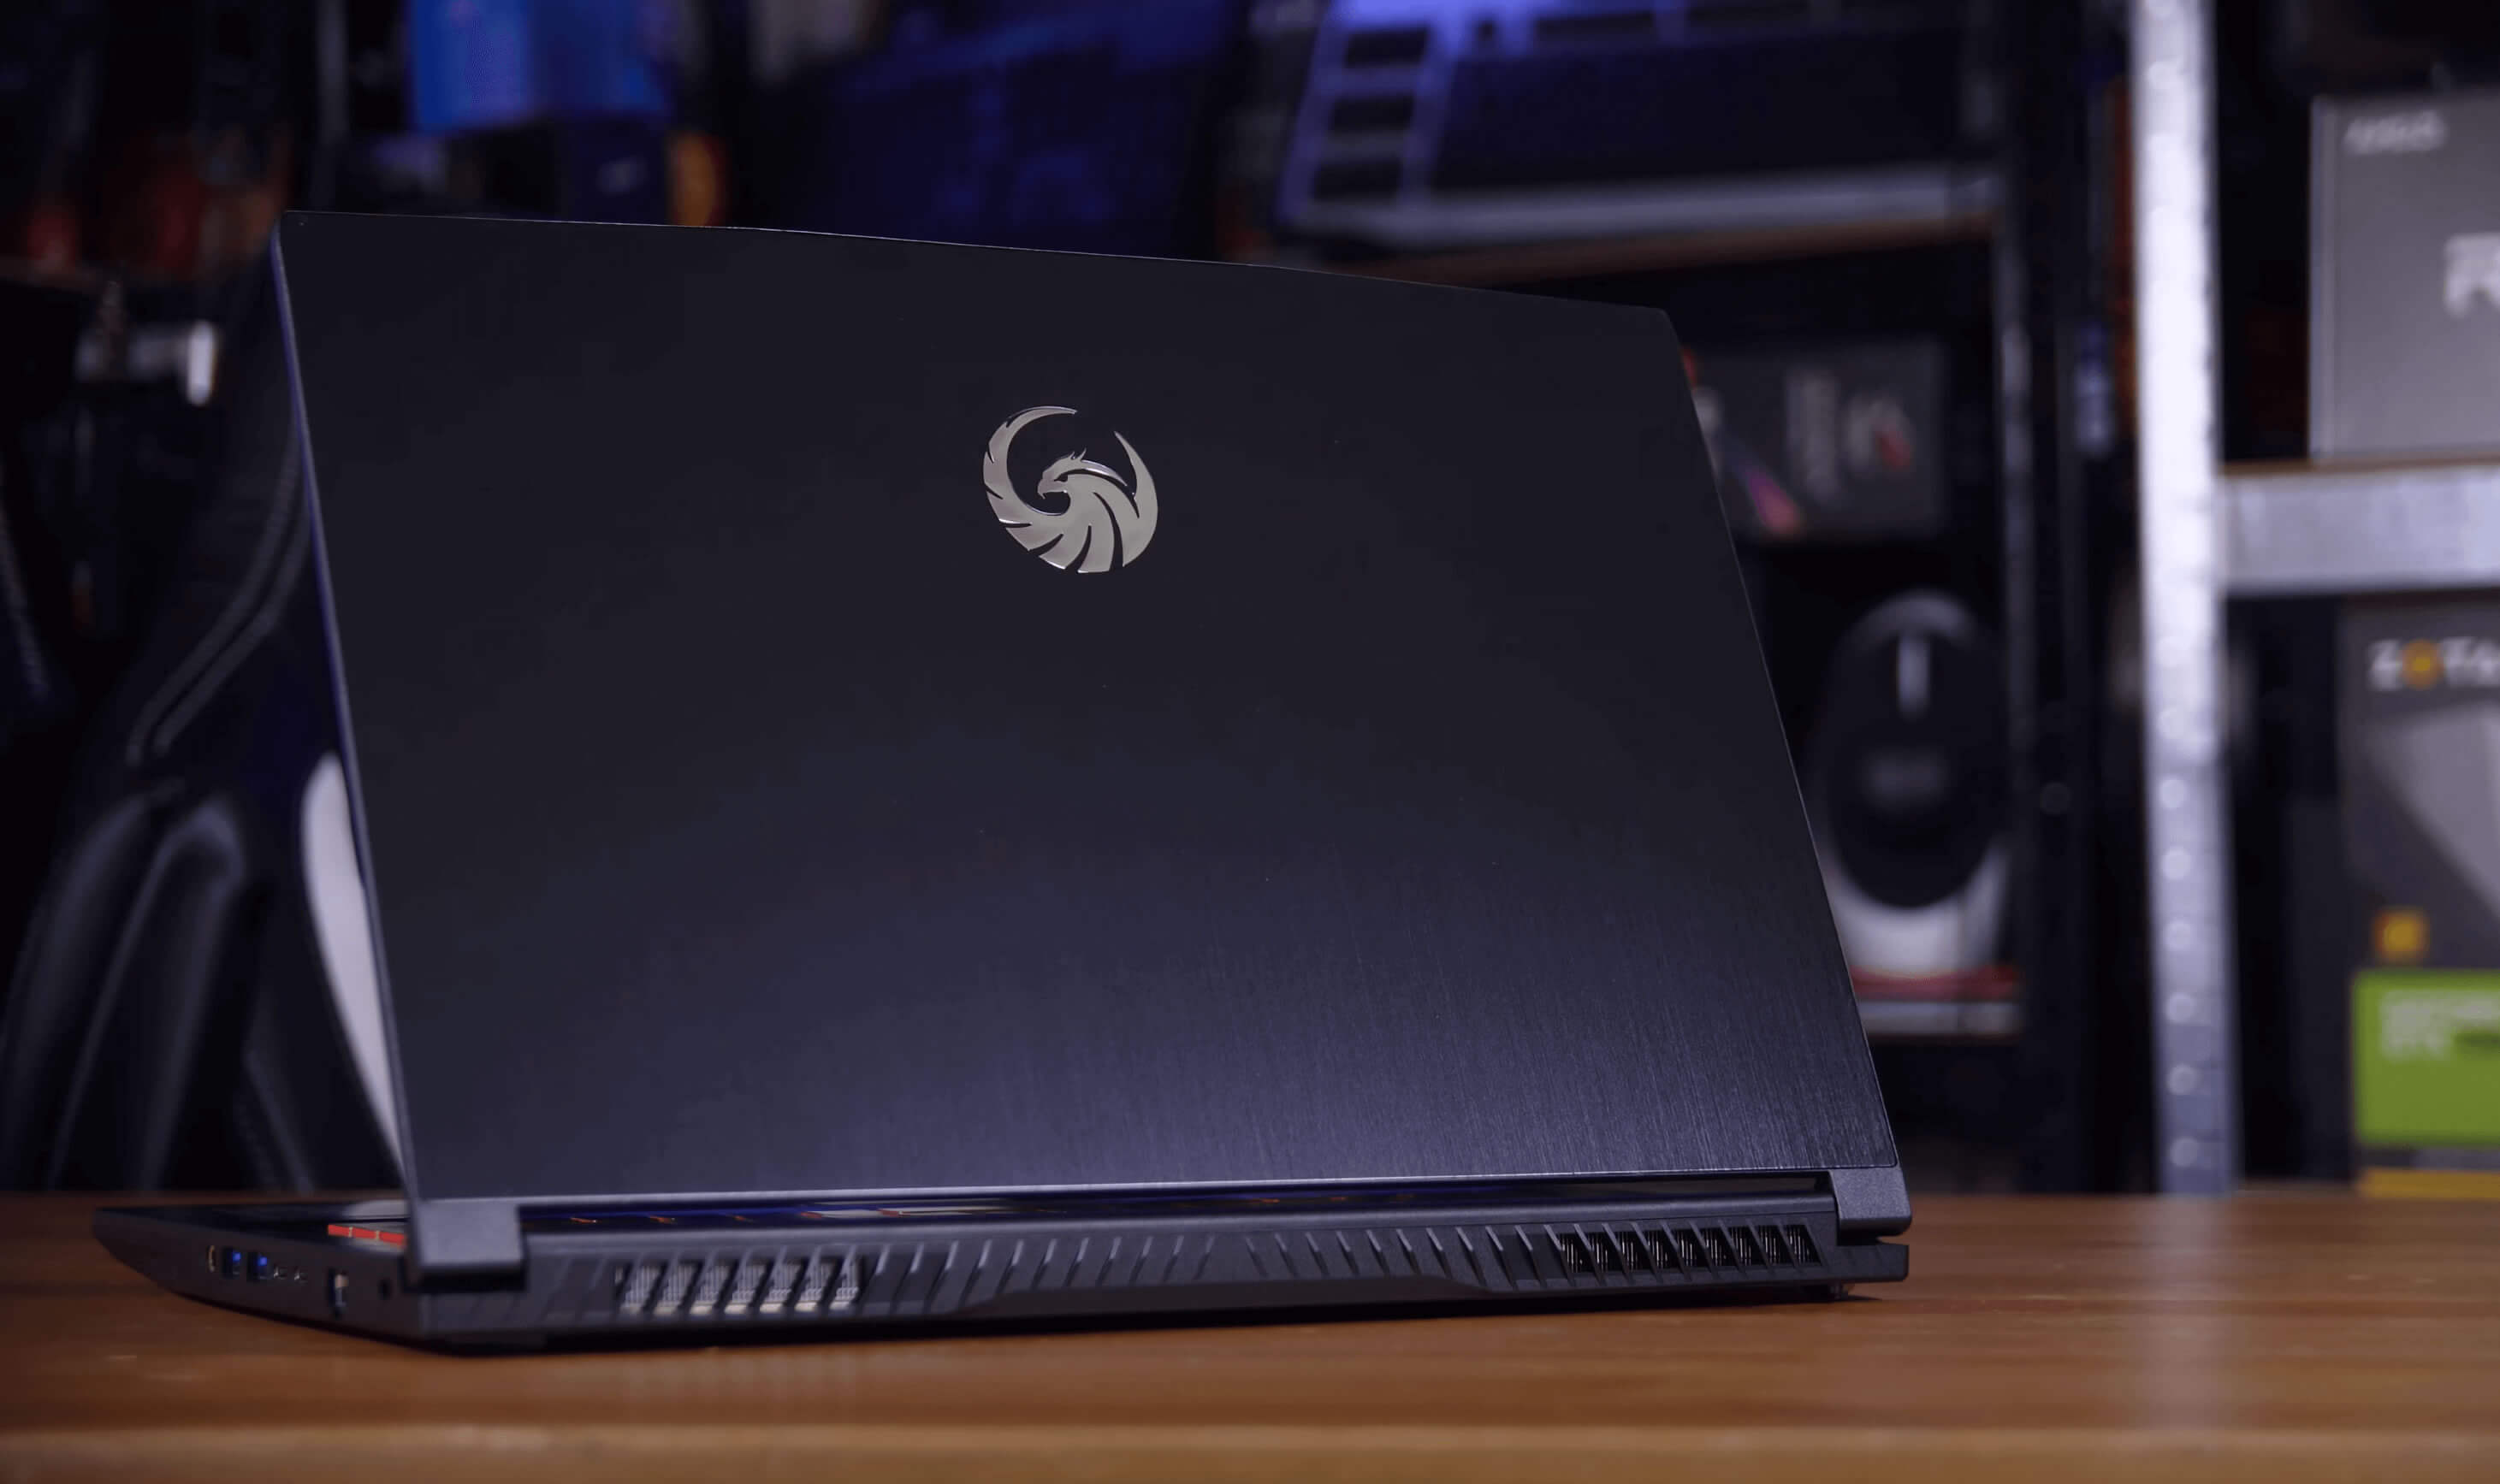 MSI allegedly attempted to bribe YouTuber to prevent a negative review